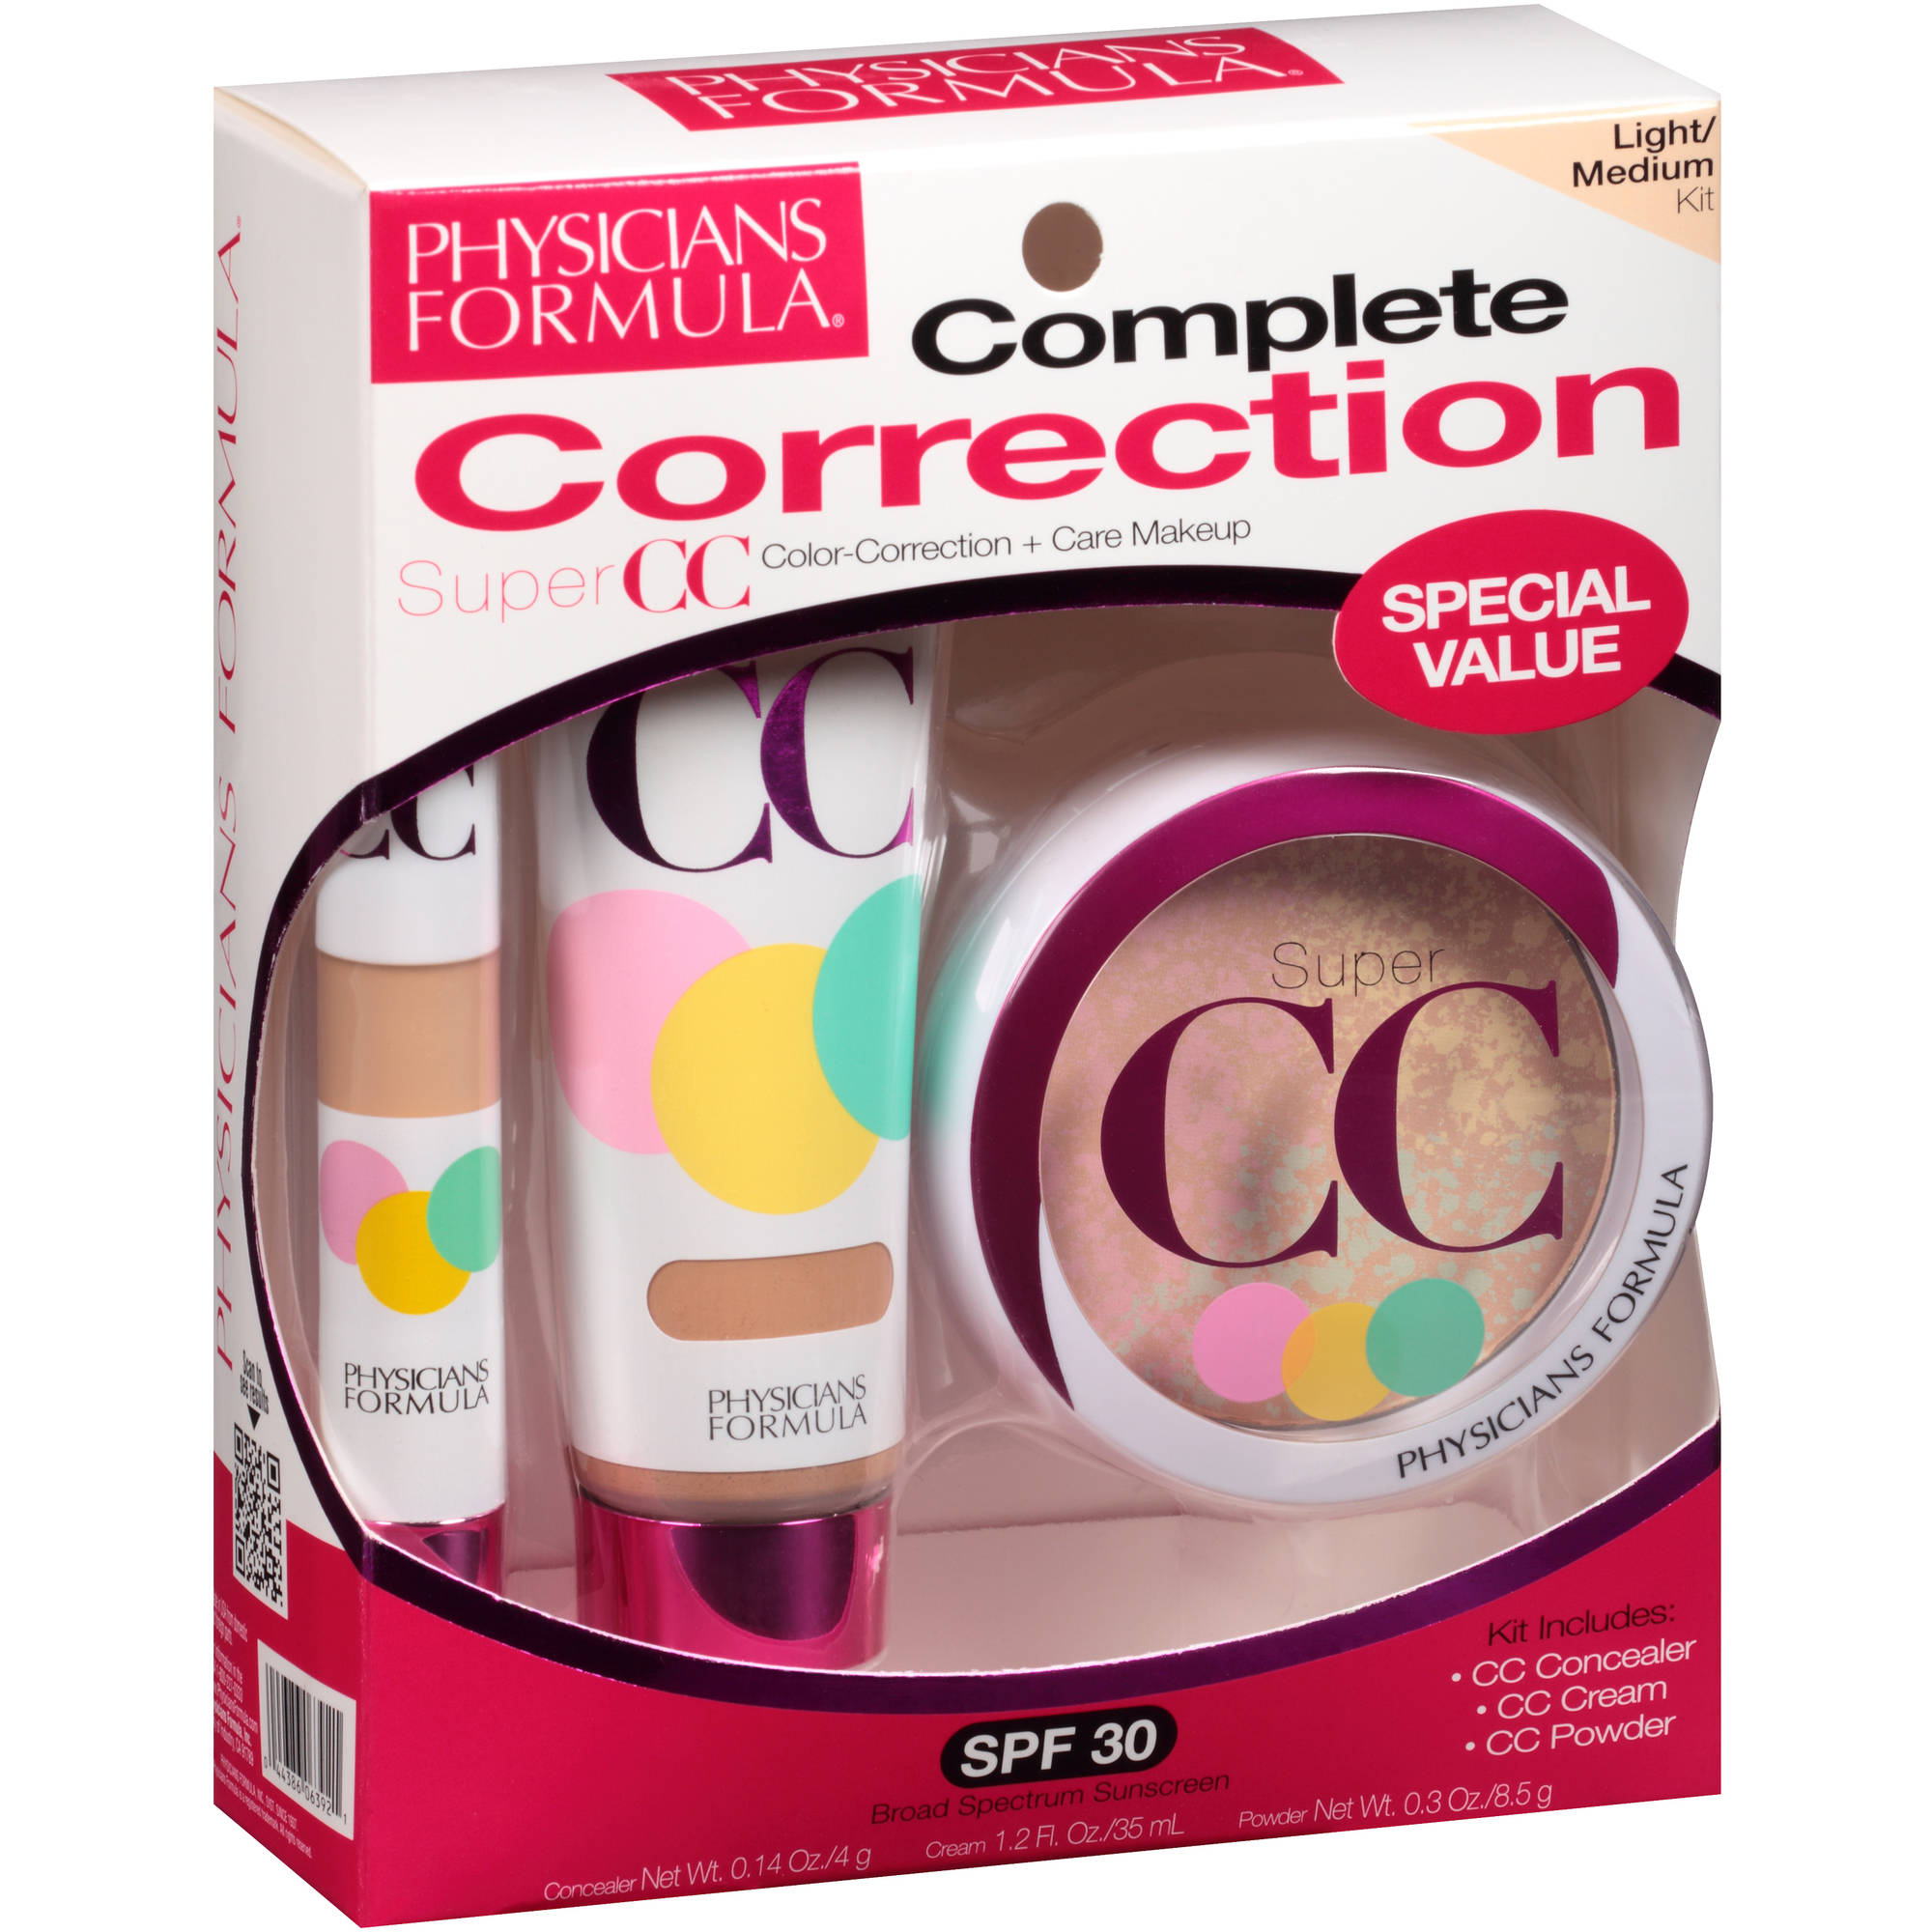 Physicians Formula Complete Correction Super CC Color-Correction + Care Makeup Kit, Light/Medium, 3 pc